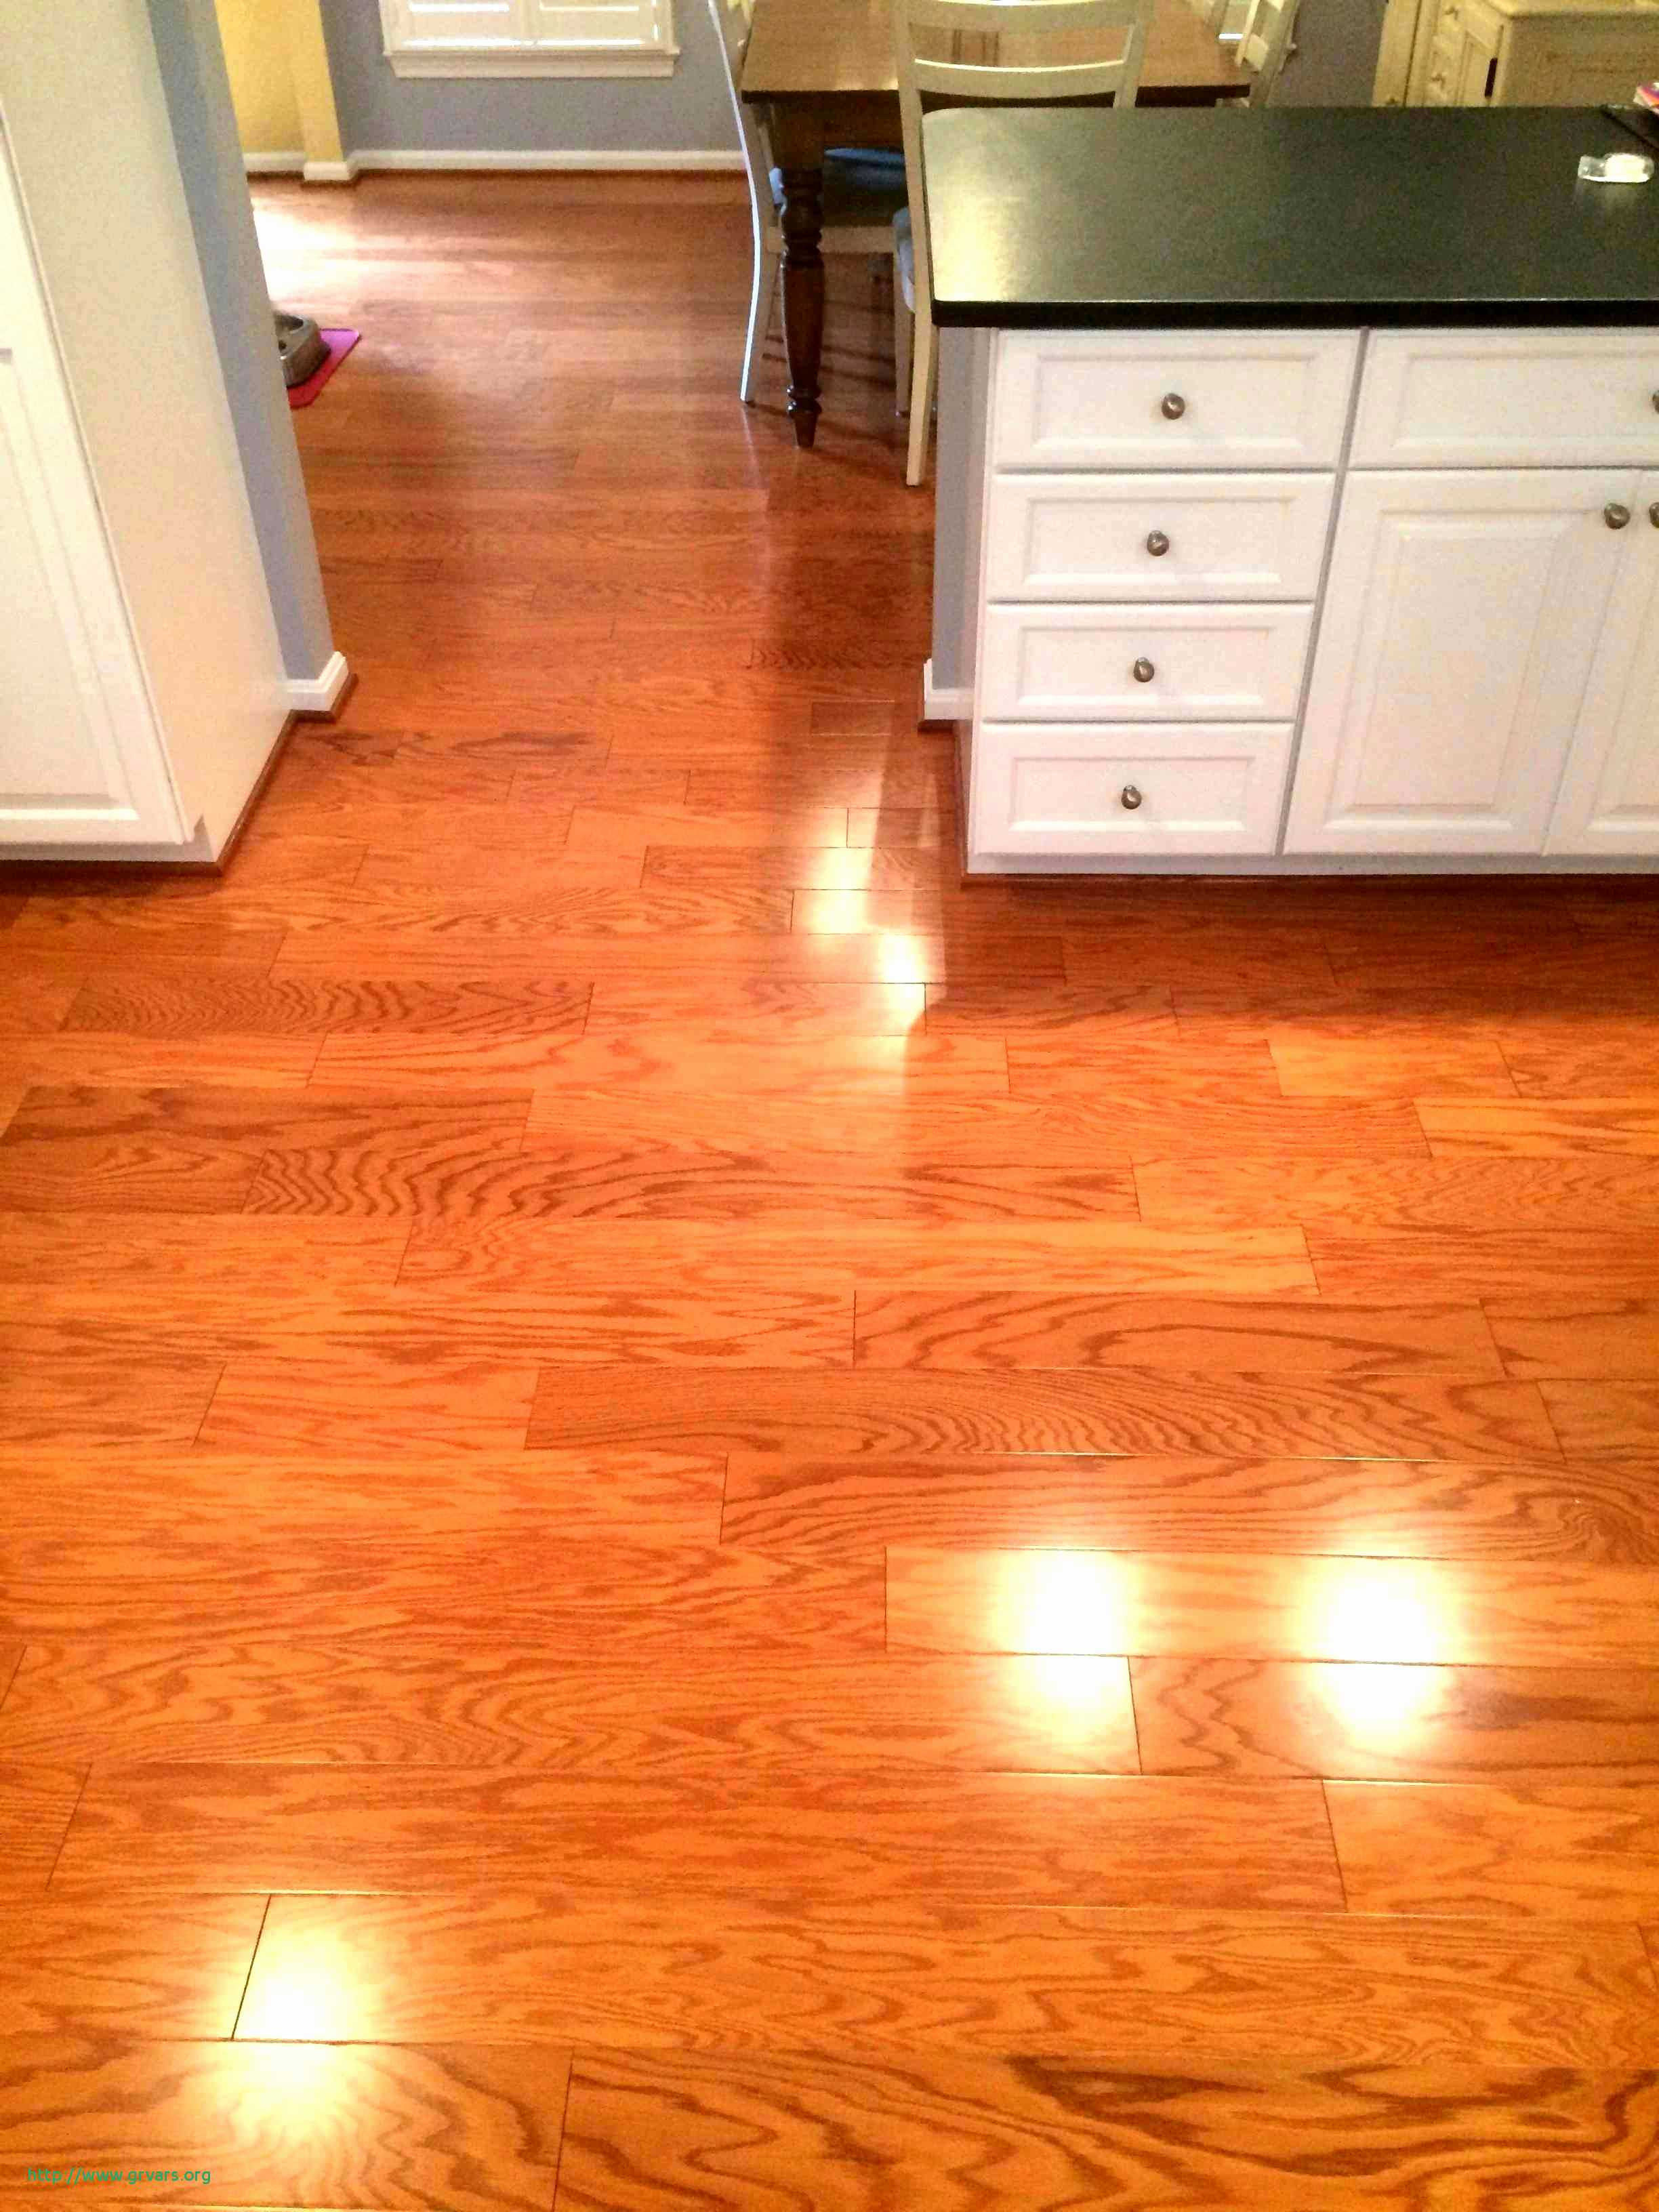 hardwood floor cleaner that doesn t leave residue of 20 nouveau hazy hardwood floors ideas blog inside flooring near me how much would it cost to install wood floors